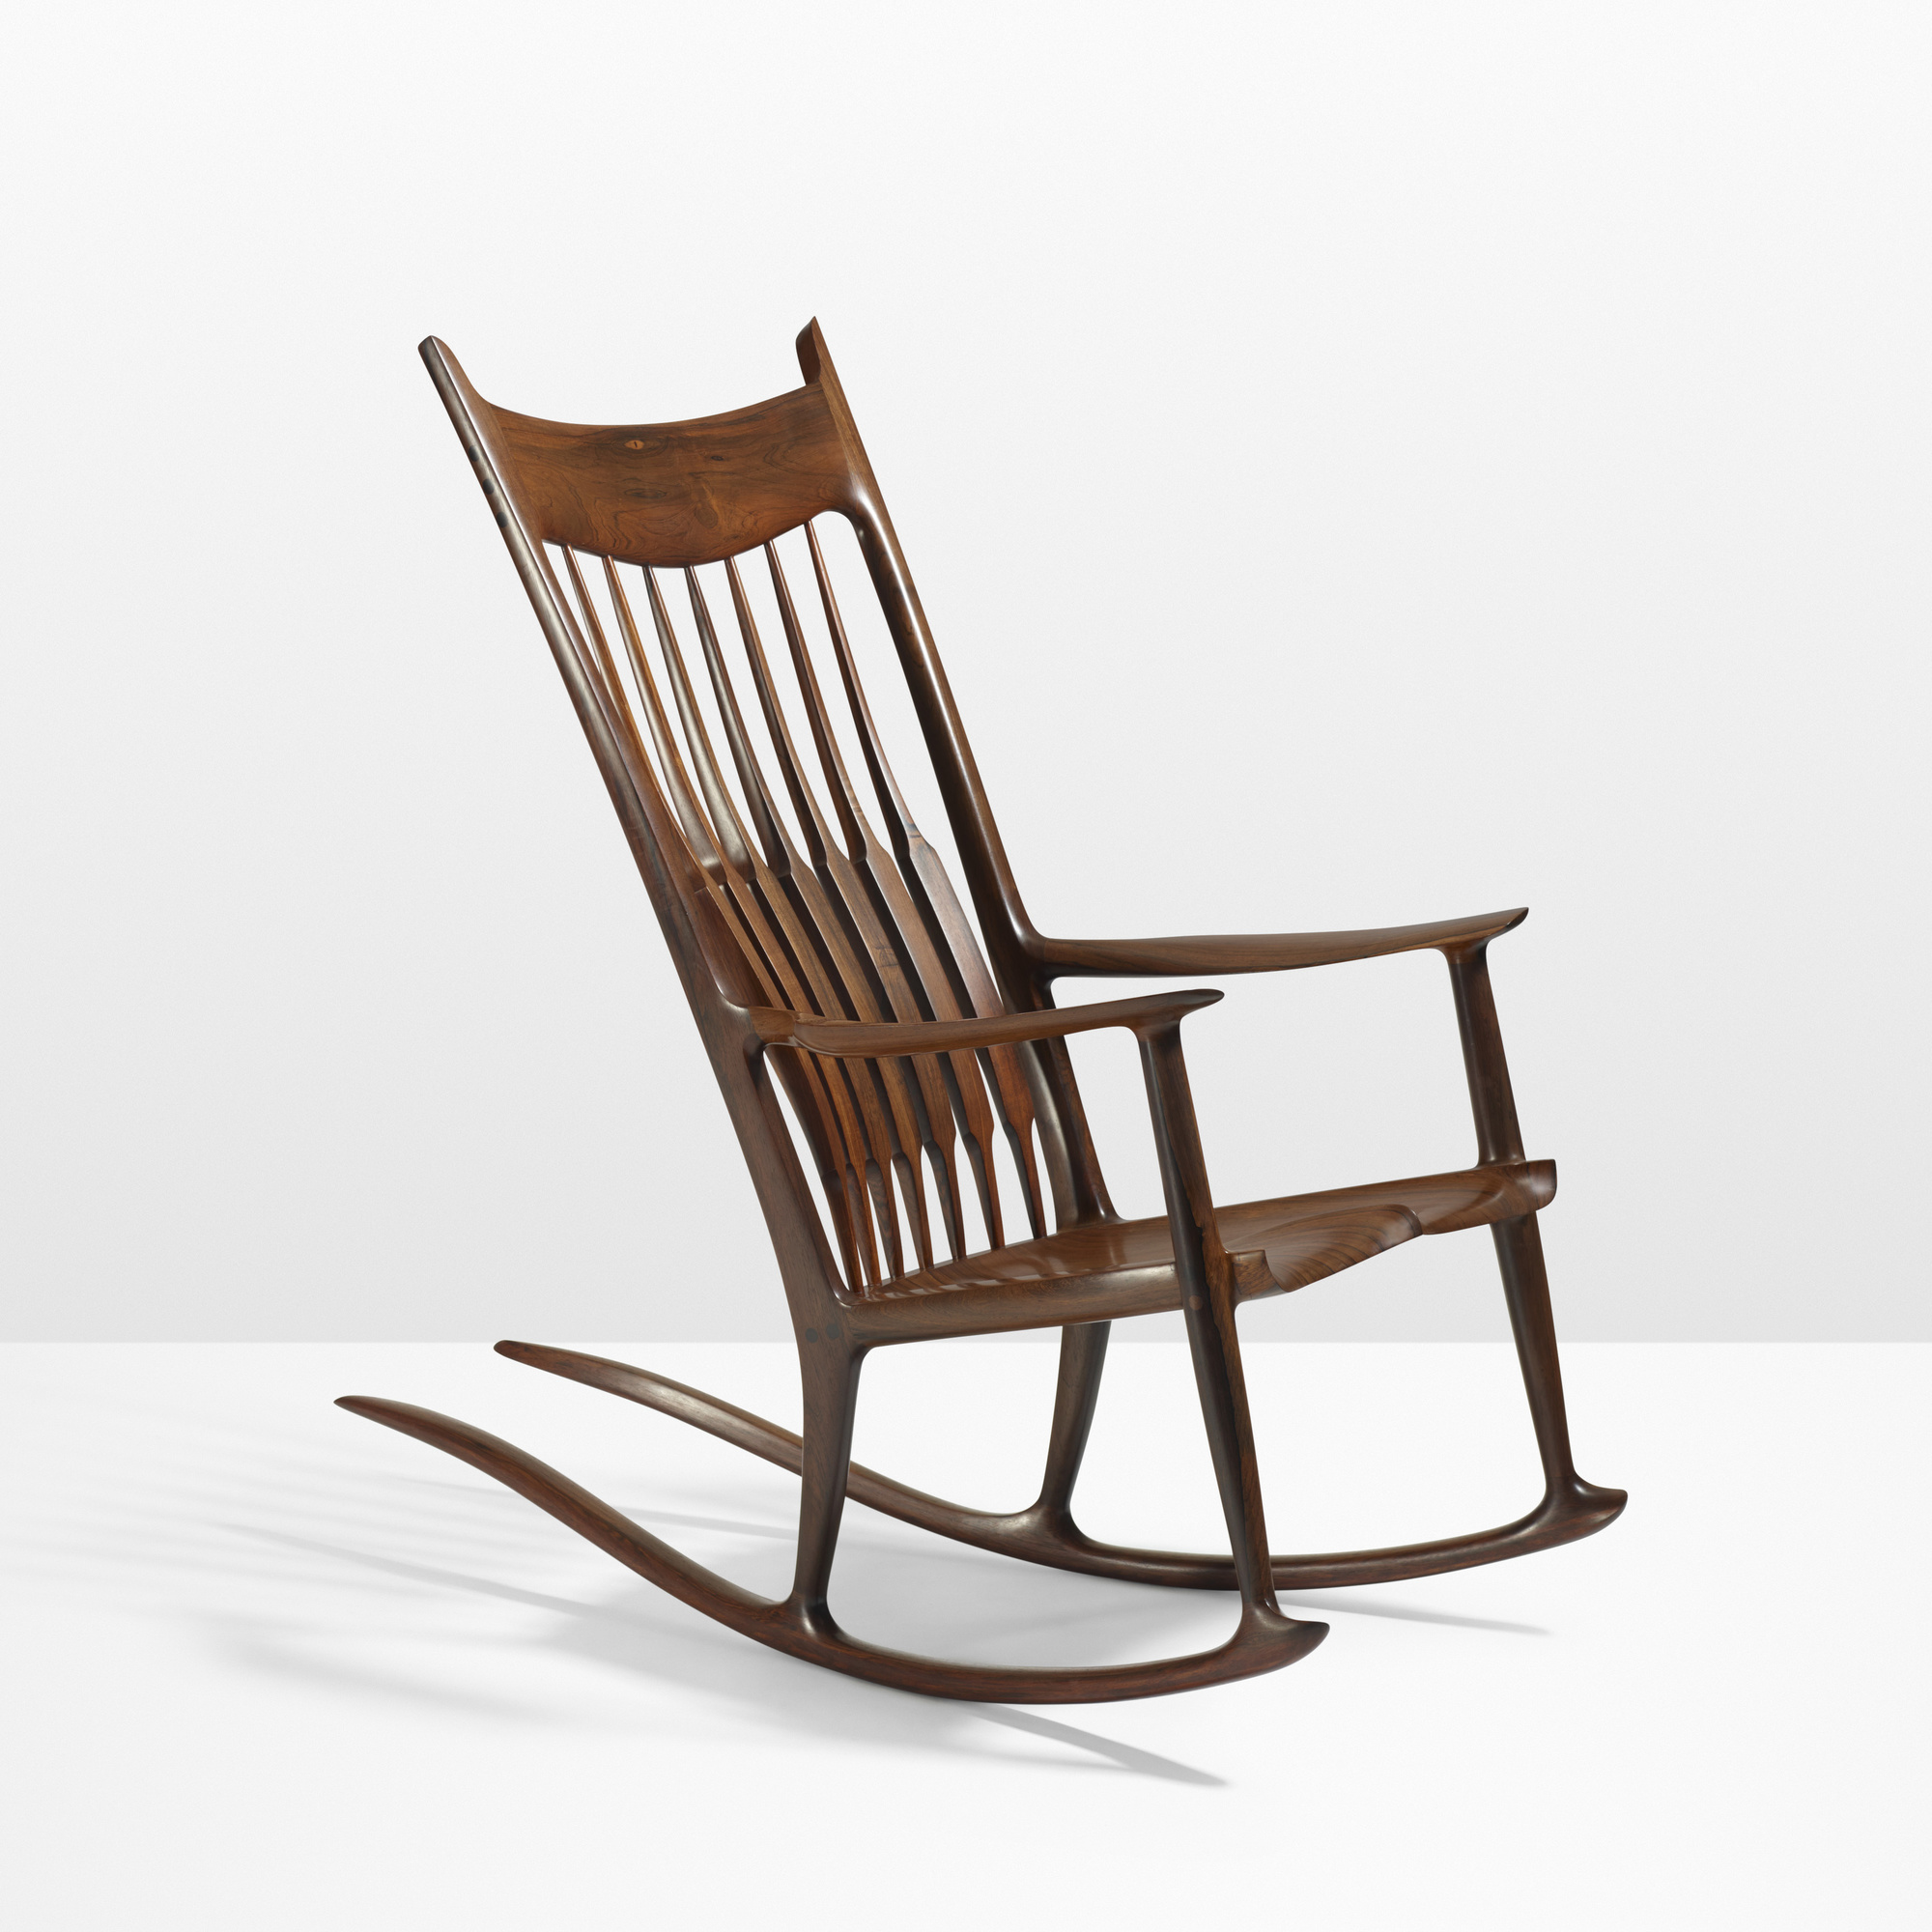 Best Place To Buy Rocking Chairs 27 Sam Maloof Important Rocking Chair Masterworks 25 May 2017